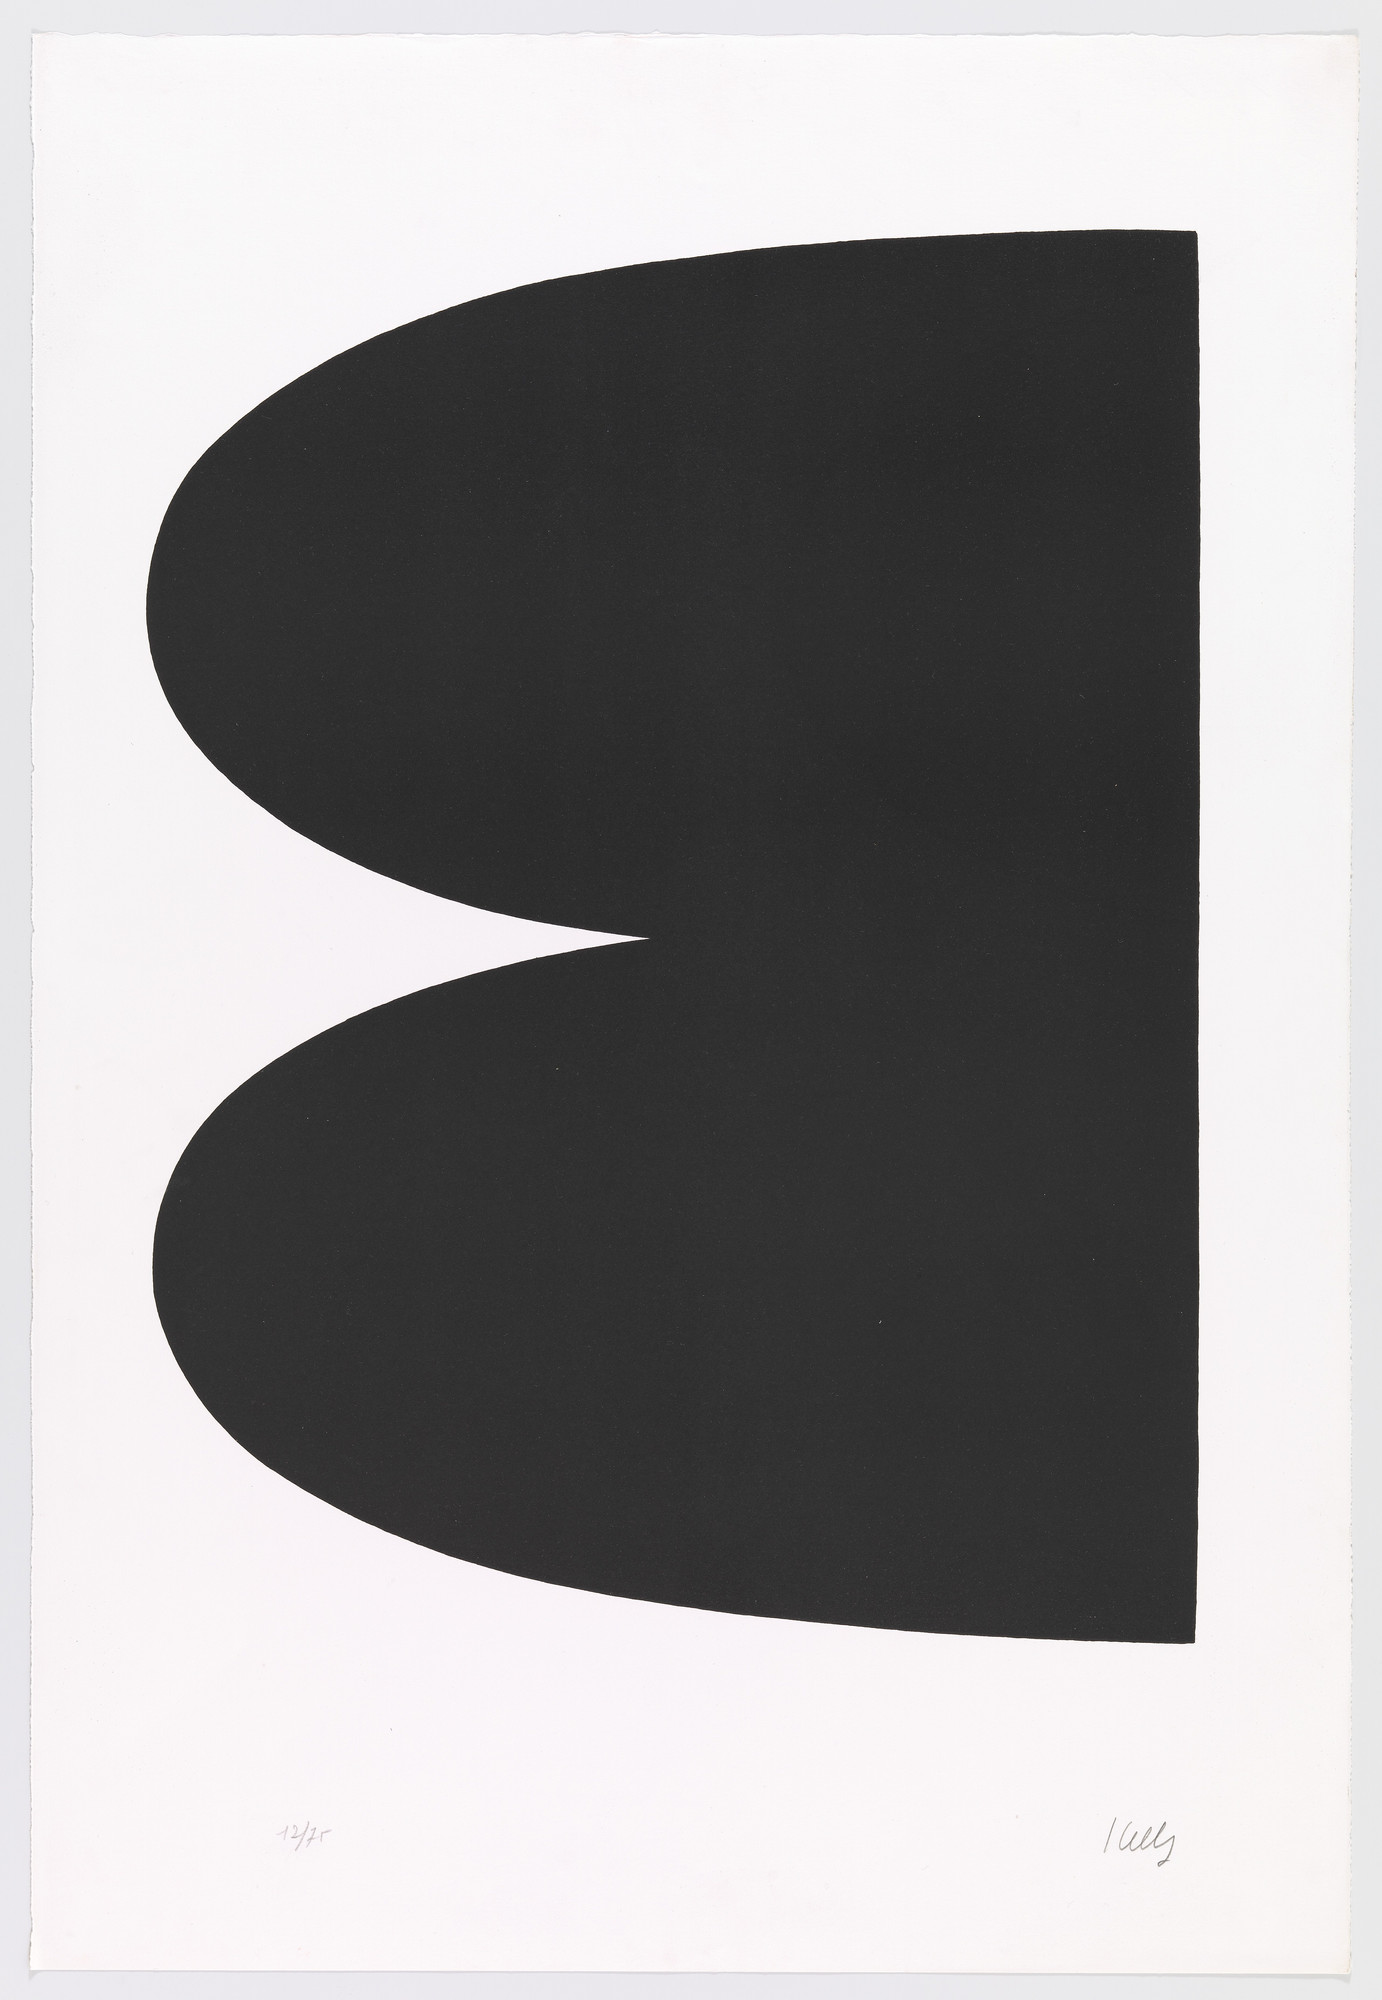 Ellsworth Kelly. Black (Noir) from Suite of Twenty-Seven Color Lithographs. 1964–65